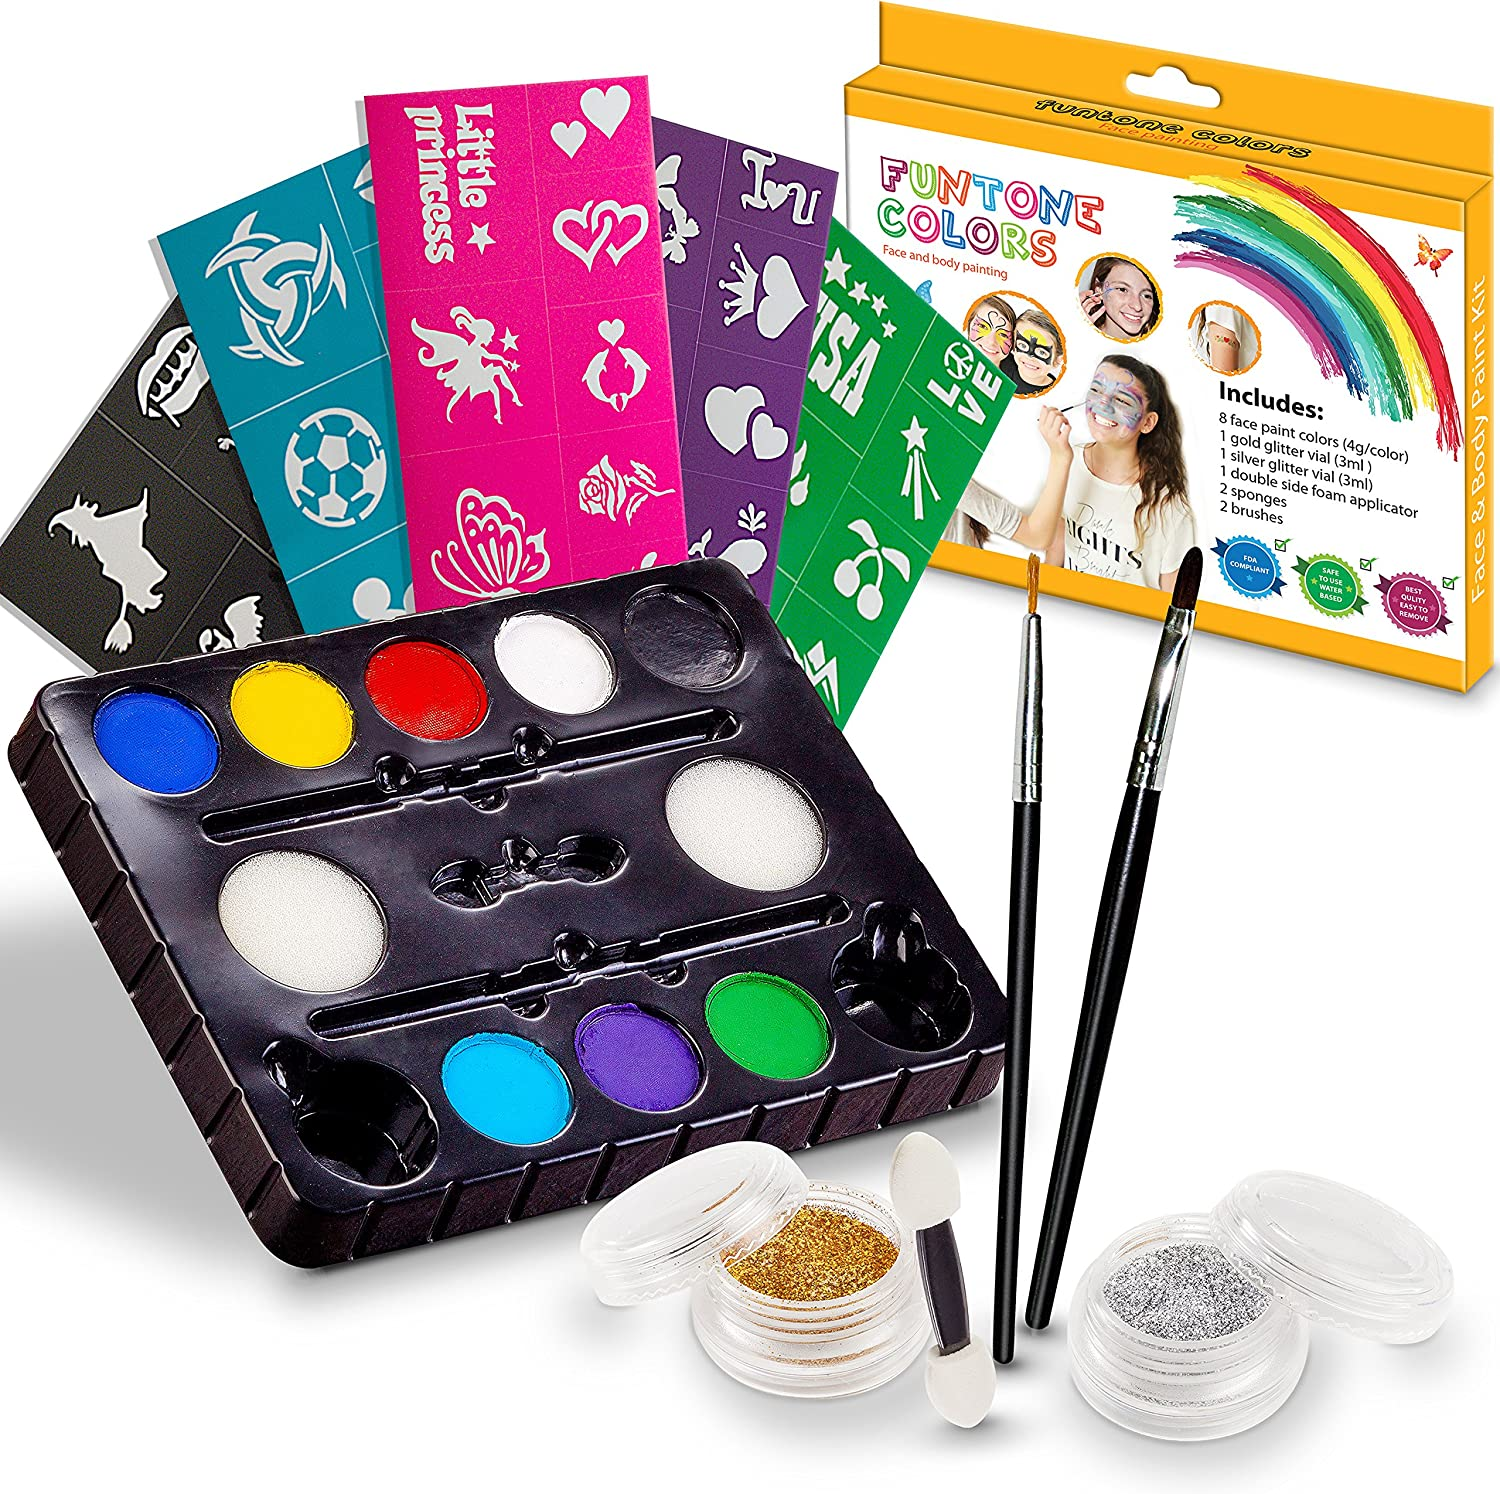 Amazon Com Face Painting Kits Free 40 Stencils Included Use For Body Painting Birthday Halloween Fan Sports Or Kids Makeup Parties Our Face Paint Kit Contain Palette 8 Colors Glitter Brushes Sponges Toys